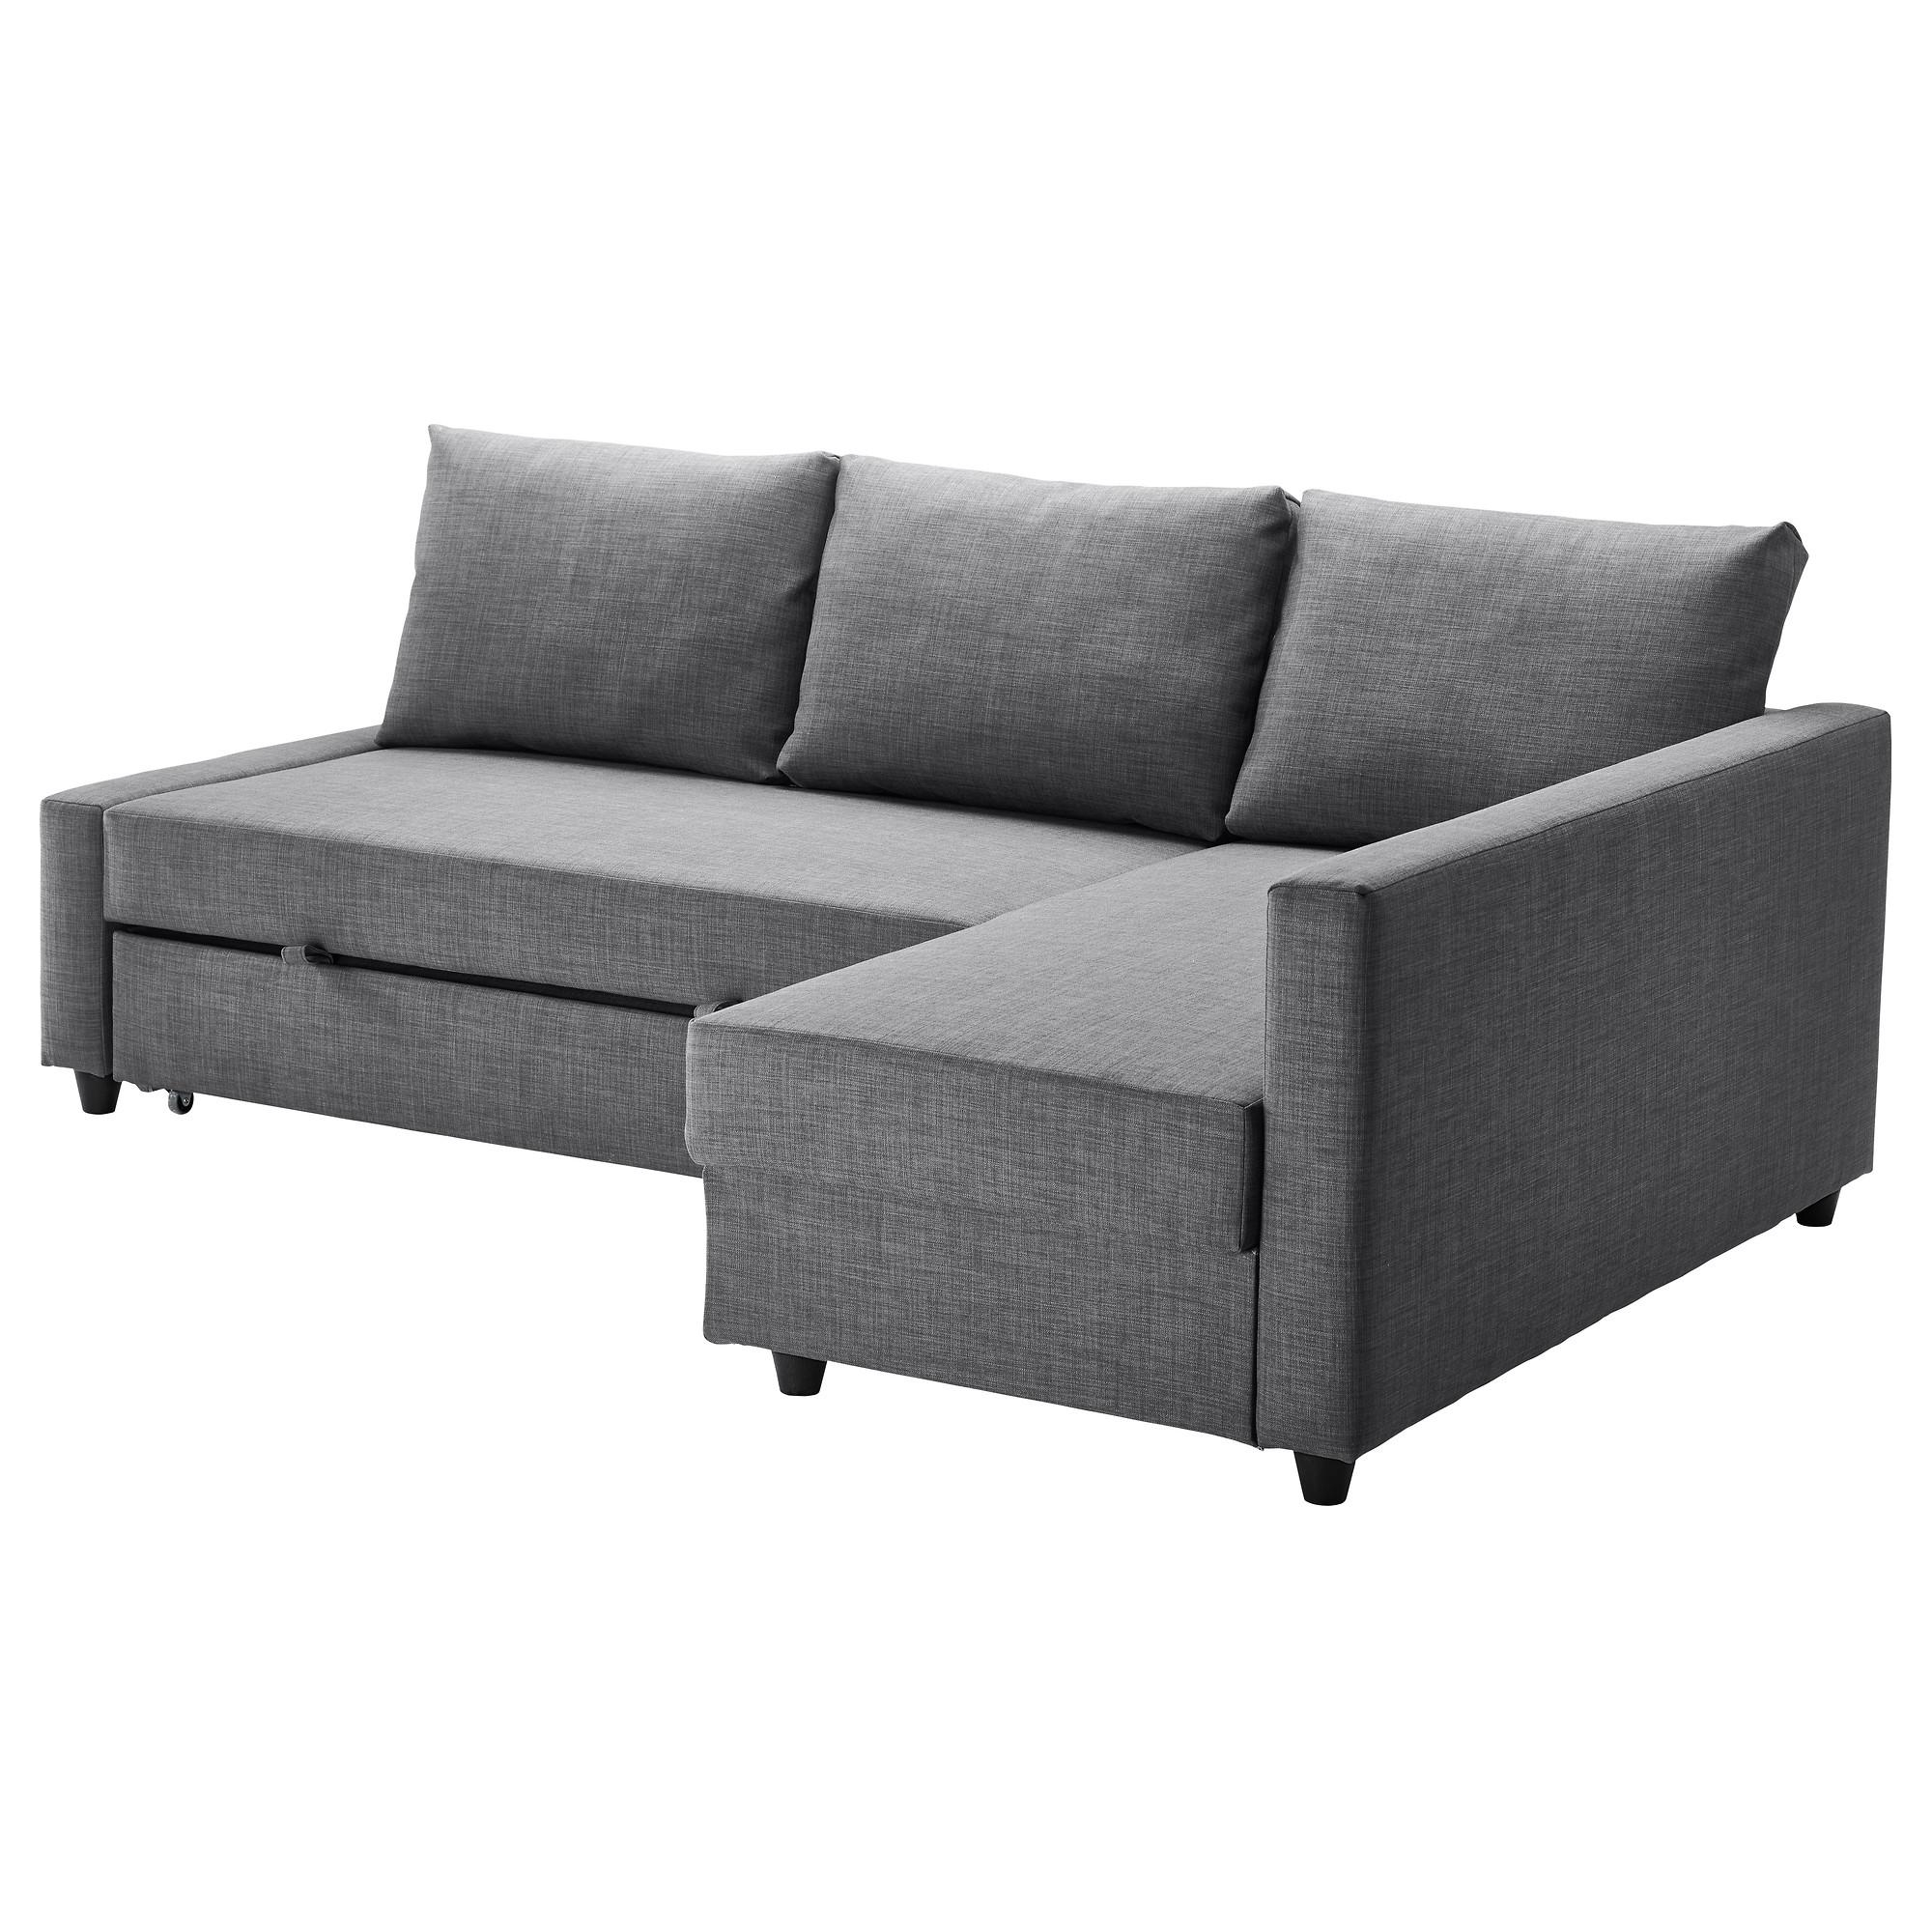 Sofa Beds & Futons – Ikea Pertaining To Sofa Bed Sleepers (Image 15 of 20)